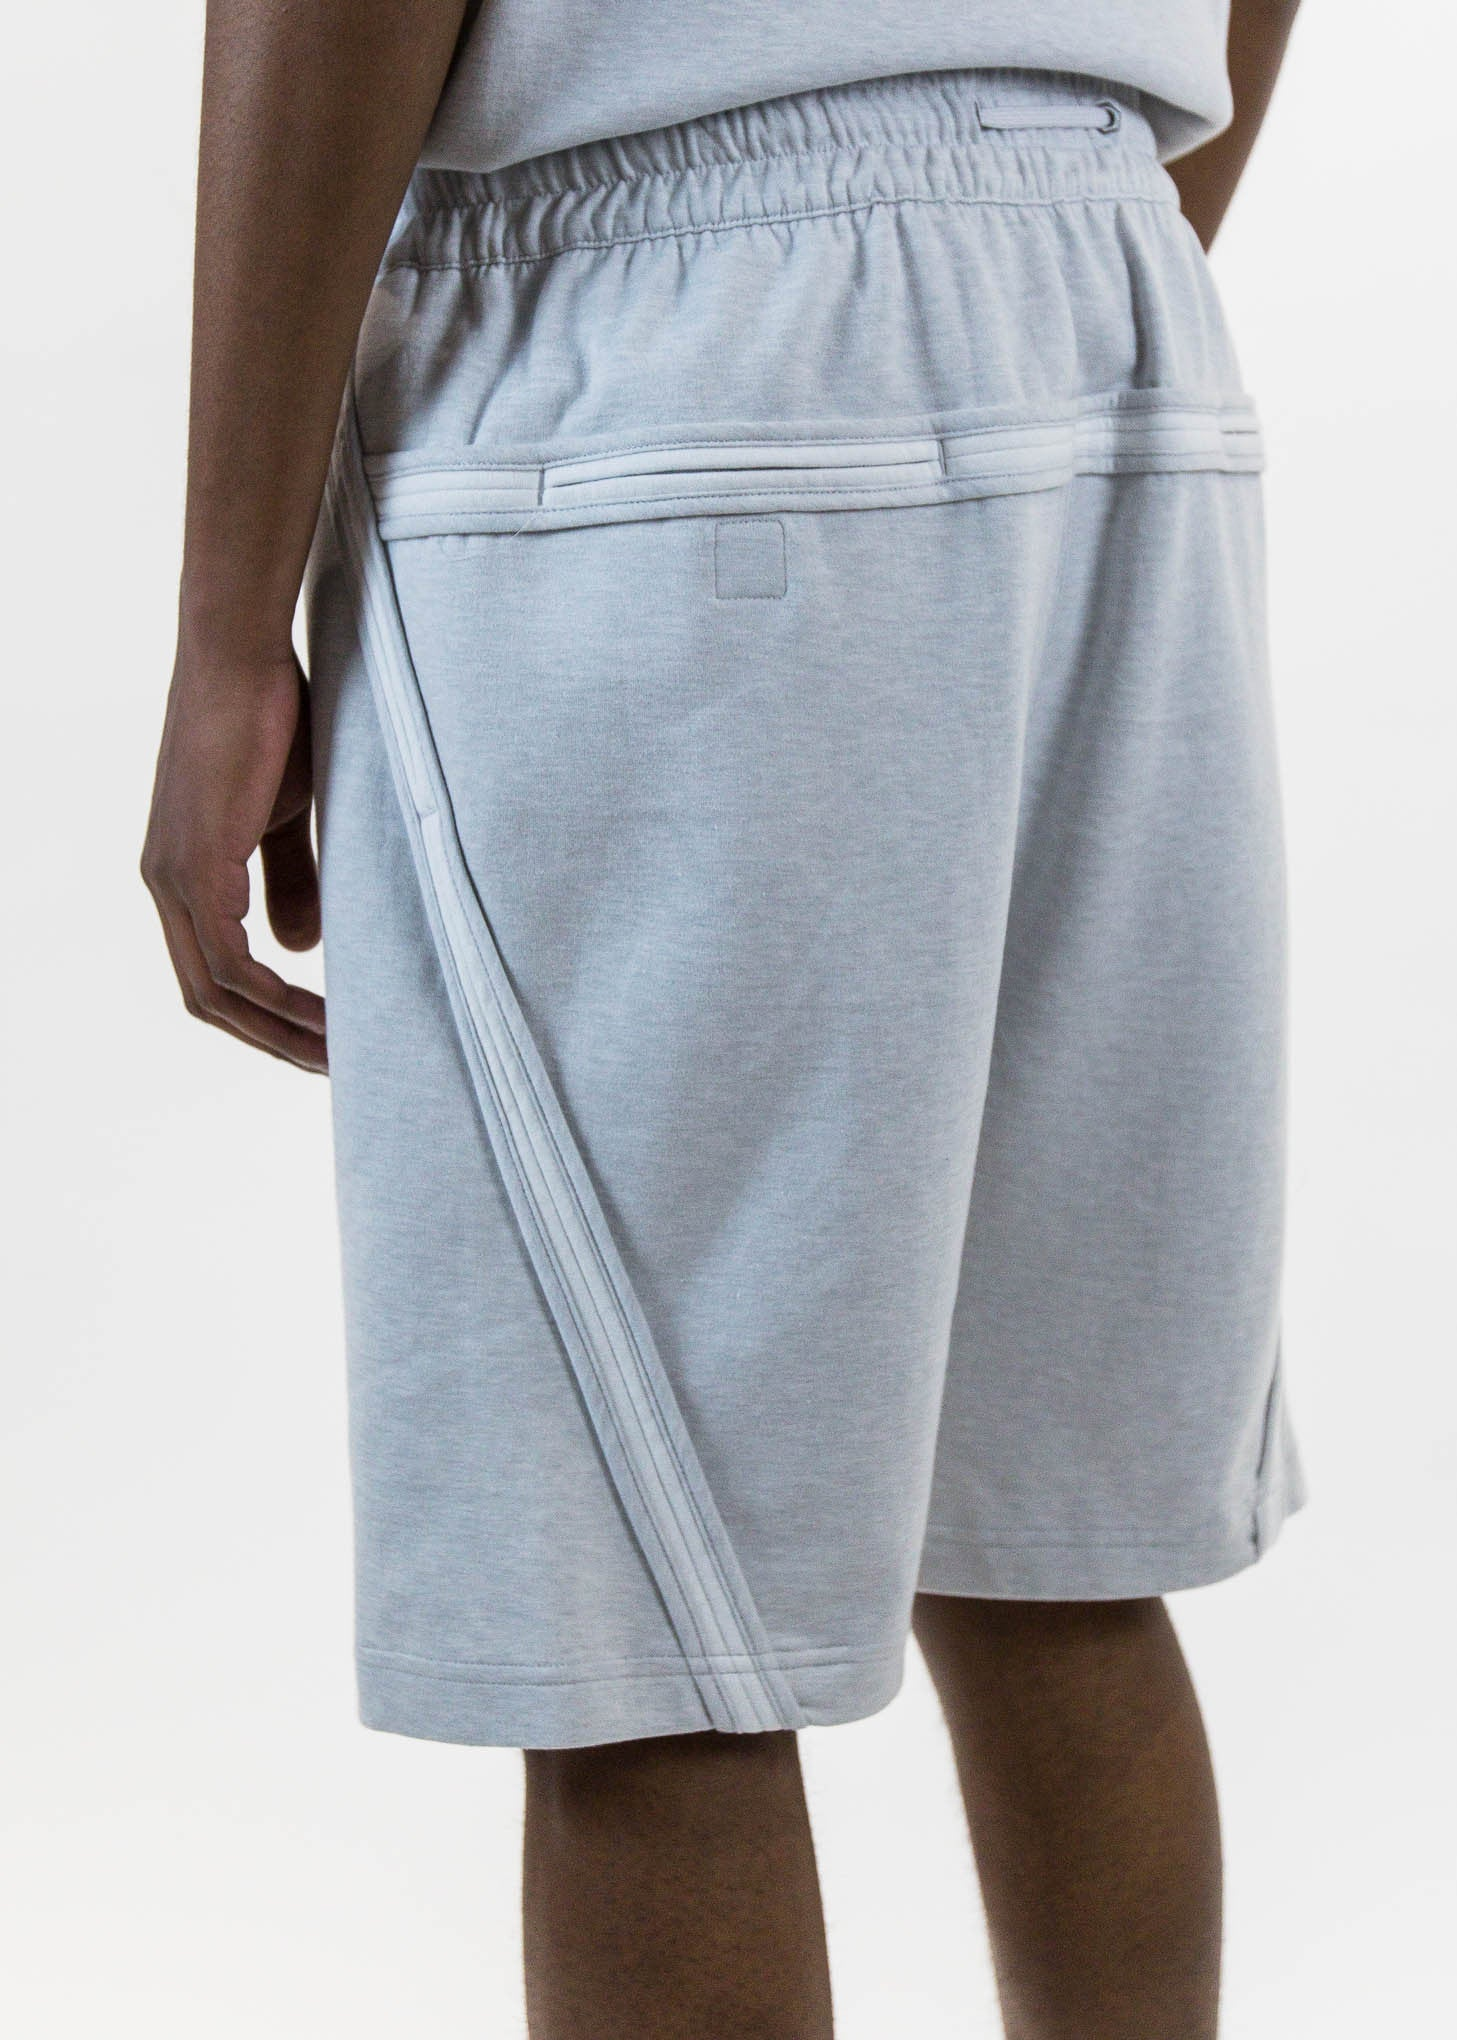 Bound Seam Shorts